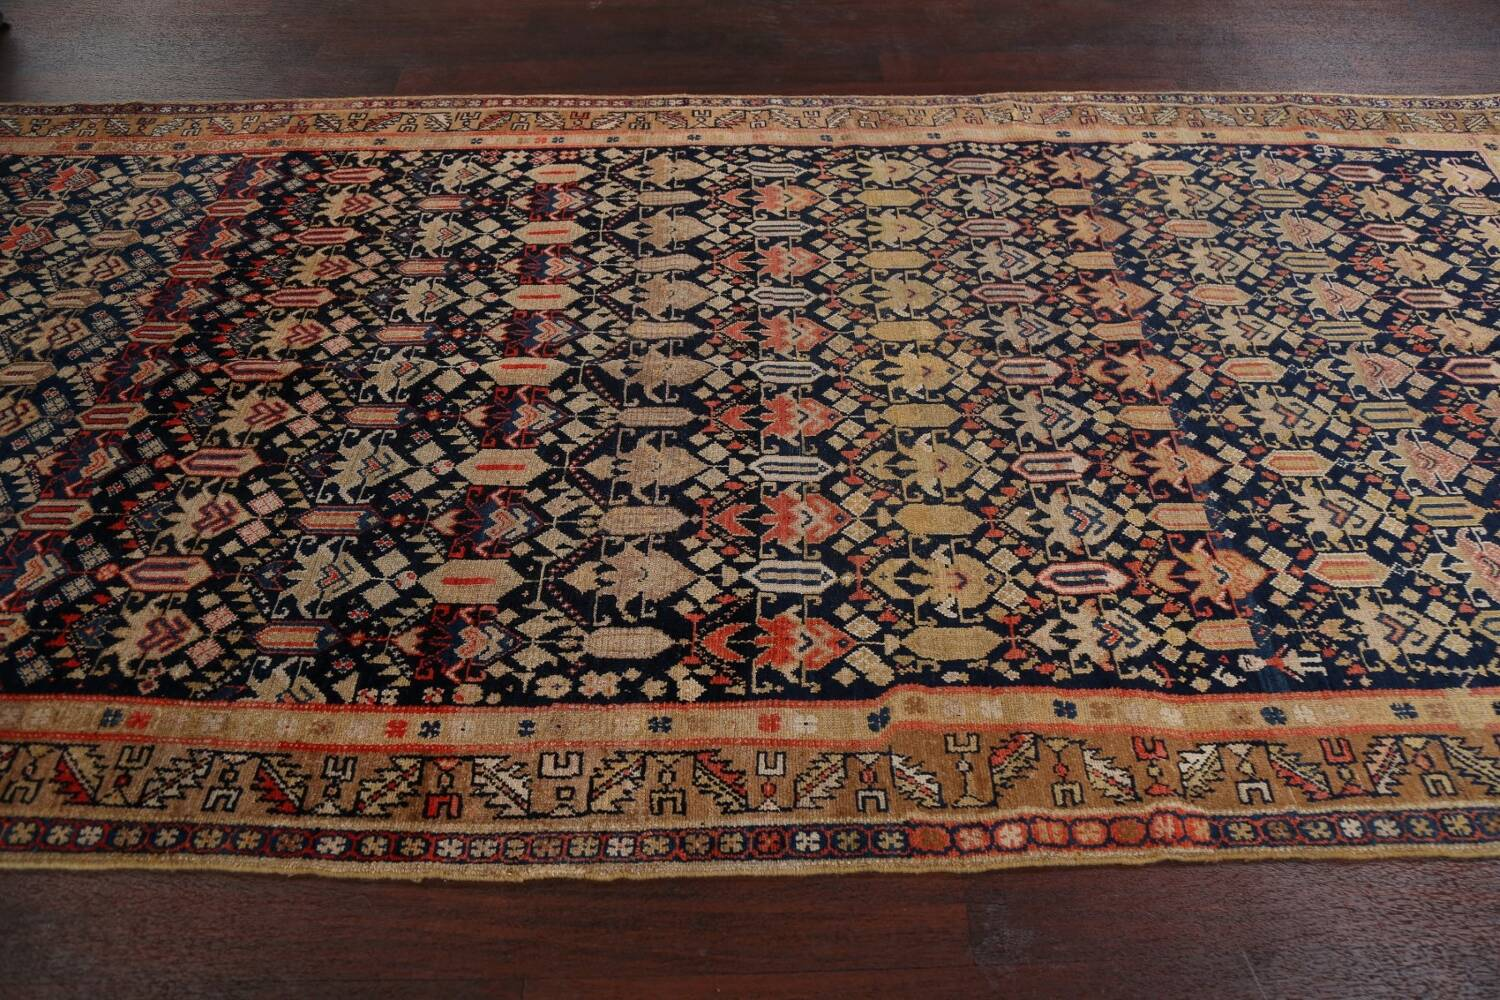 Pre-1900 Antique Vegetable Dye Malayer Persian Area Rug 5x11 image 14